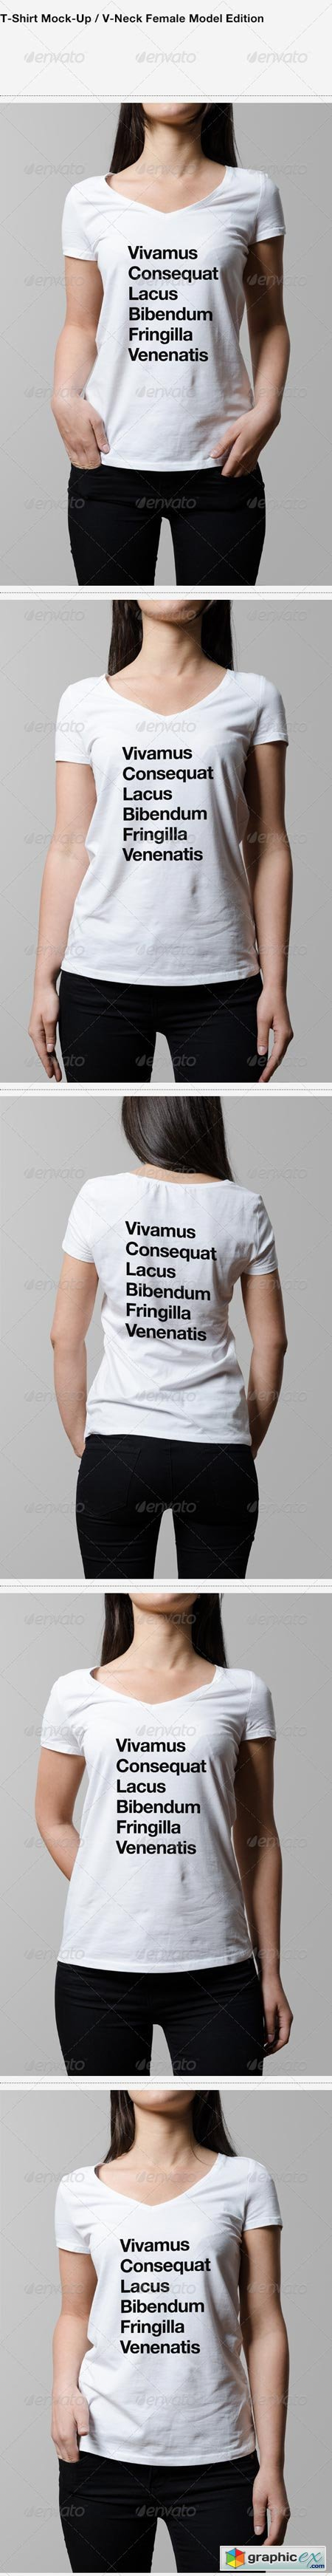 T-Shirt Mock-Up V-Neck Female Model Edition 6371868